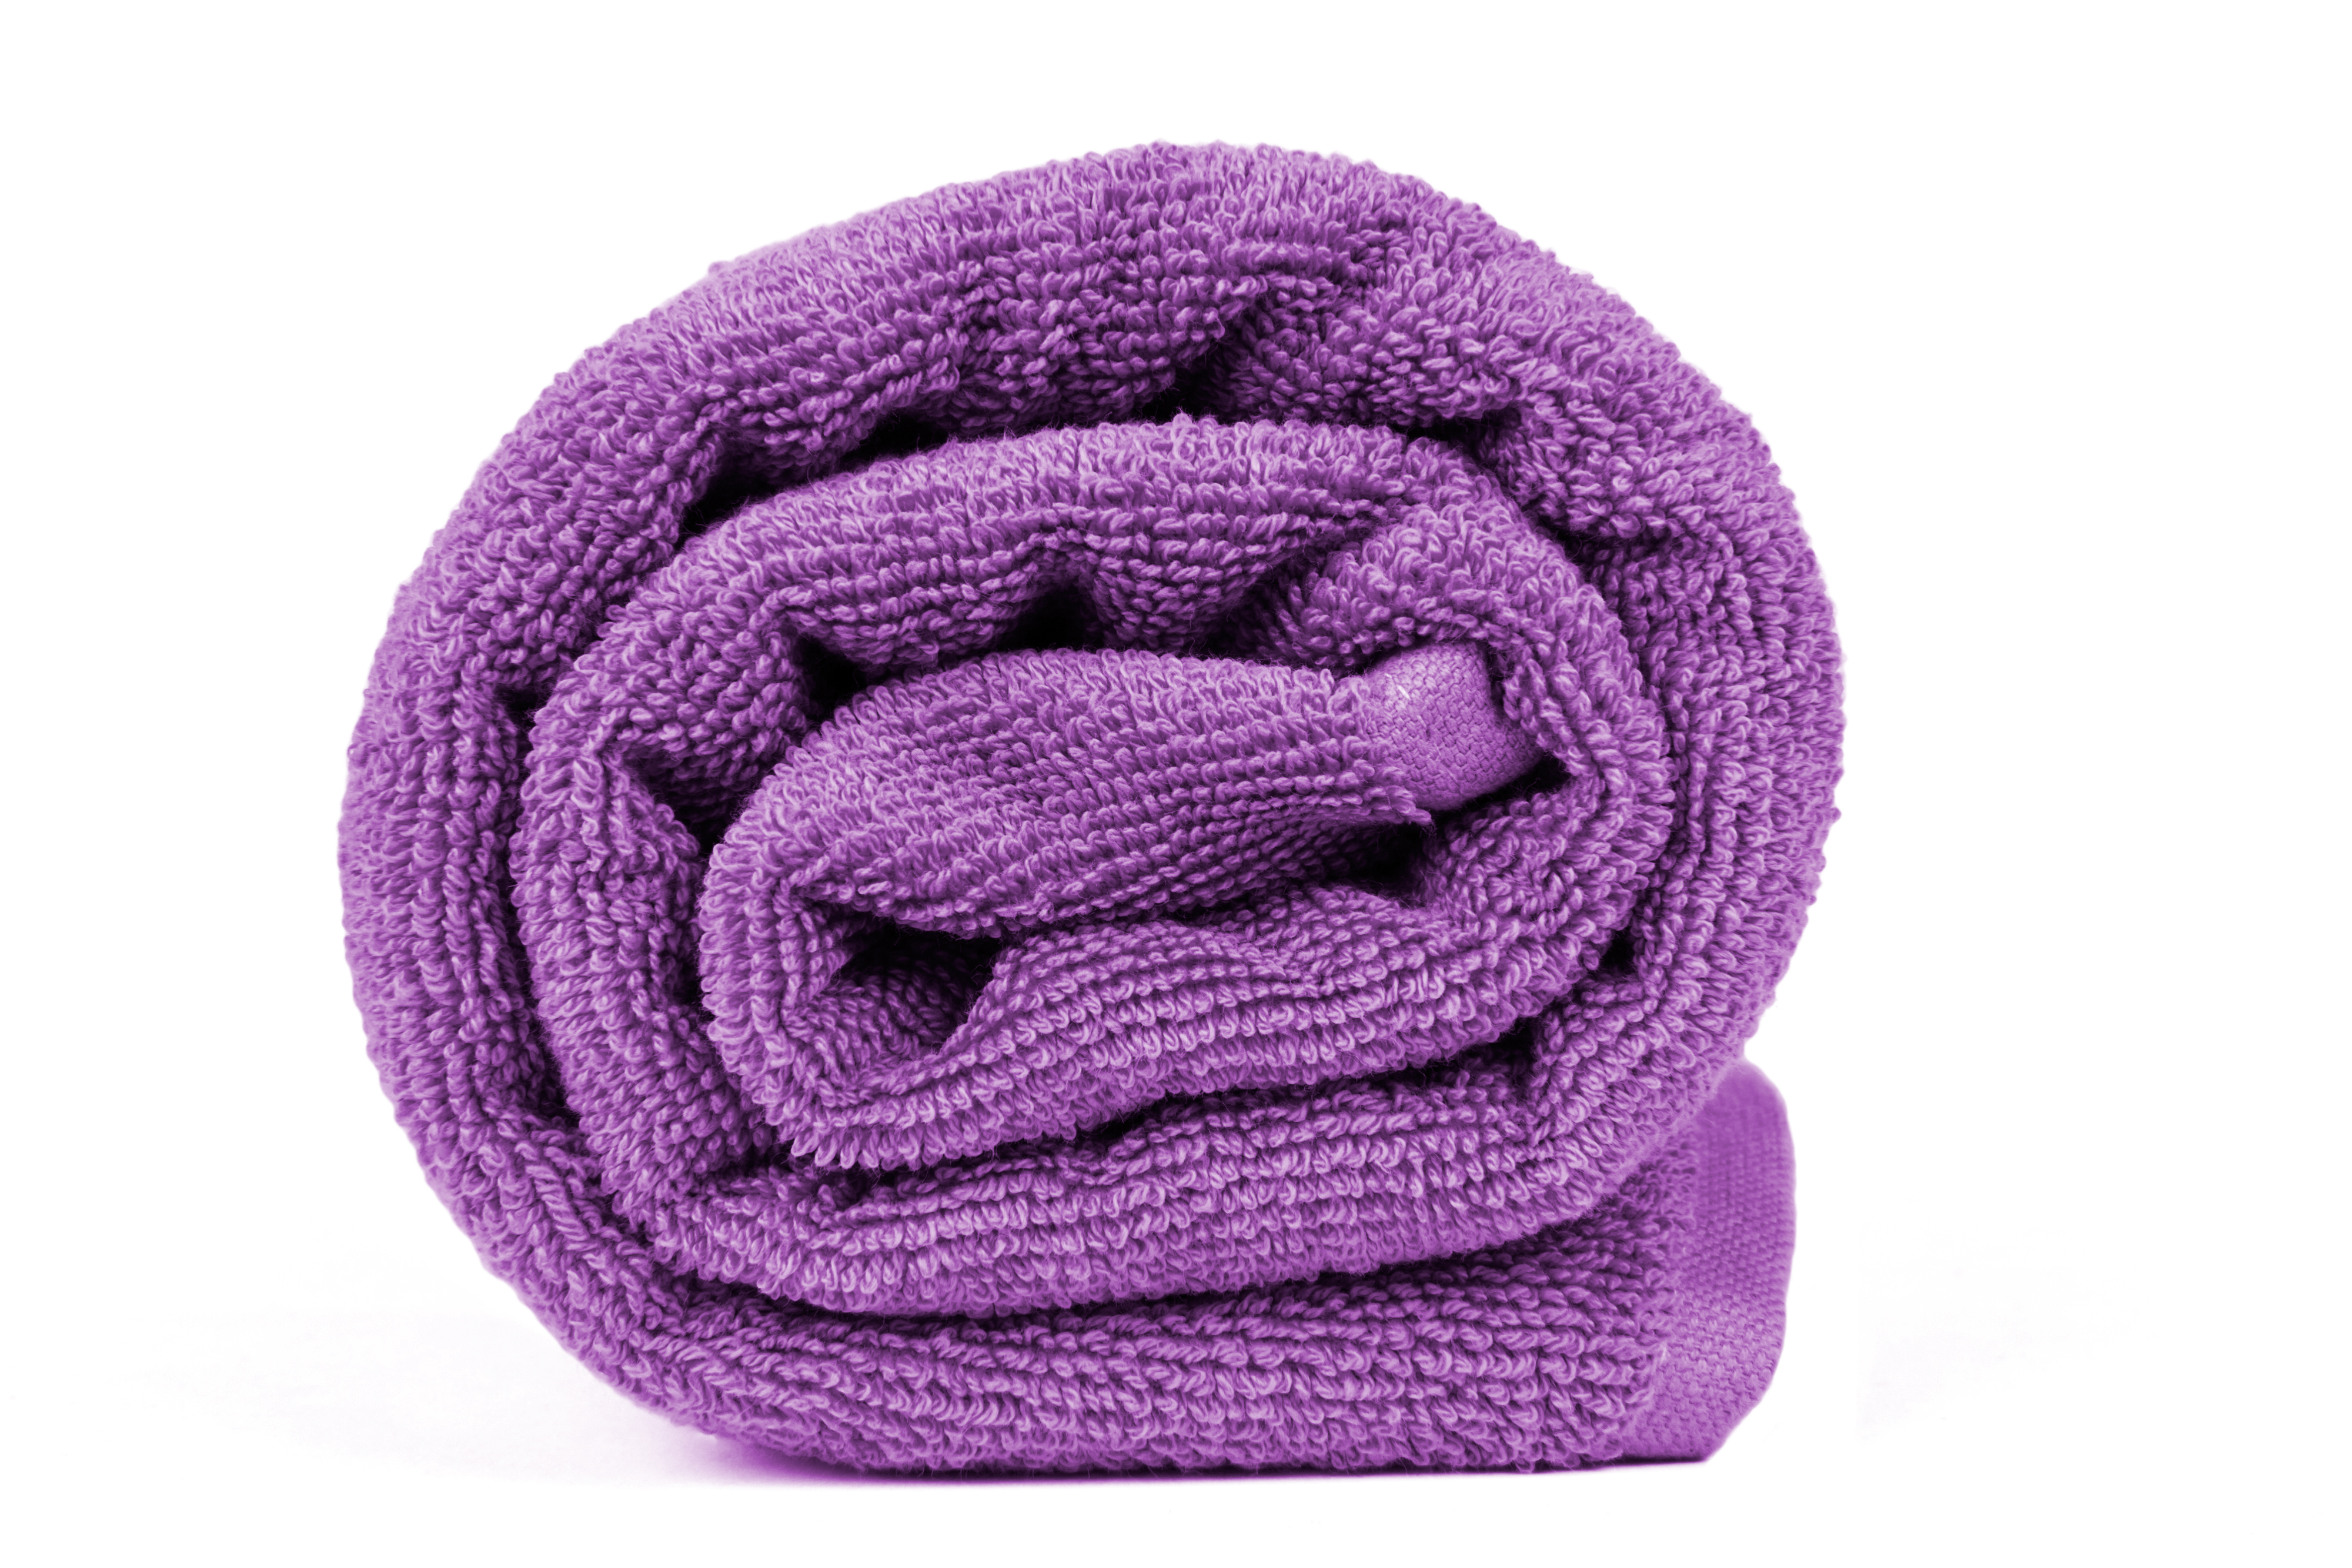 Dyed terry cotton towel.